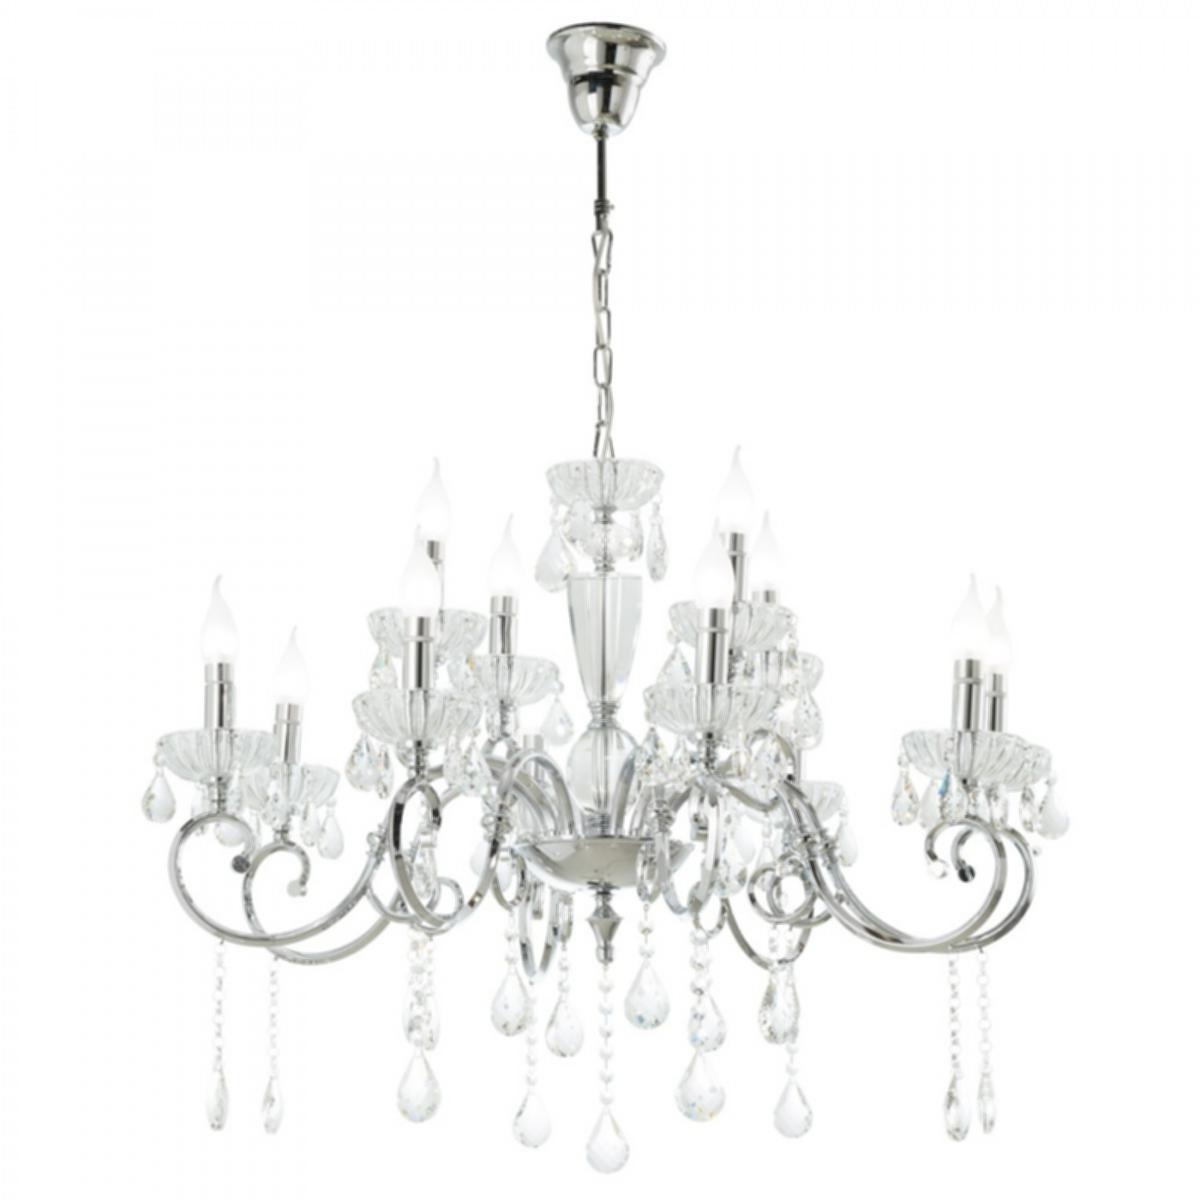 Home Design Intended For Most Popular Chandelier Accessories (View 7 of 20)